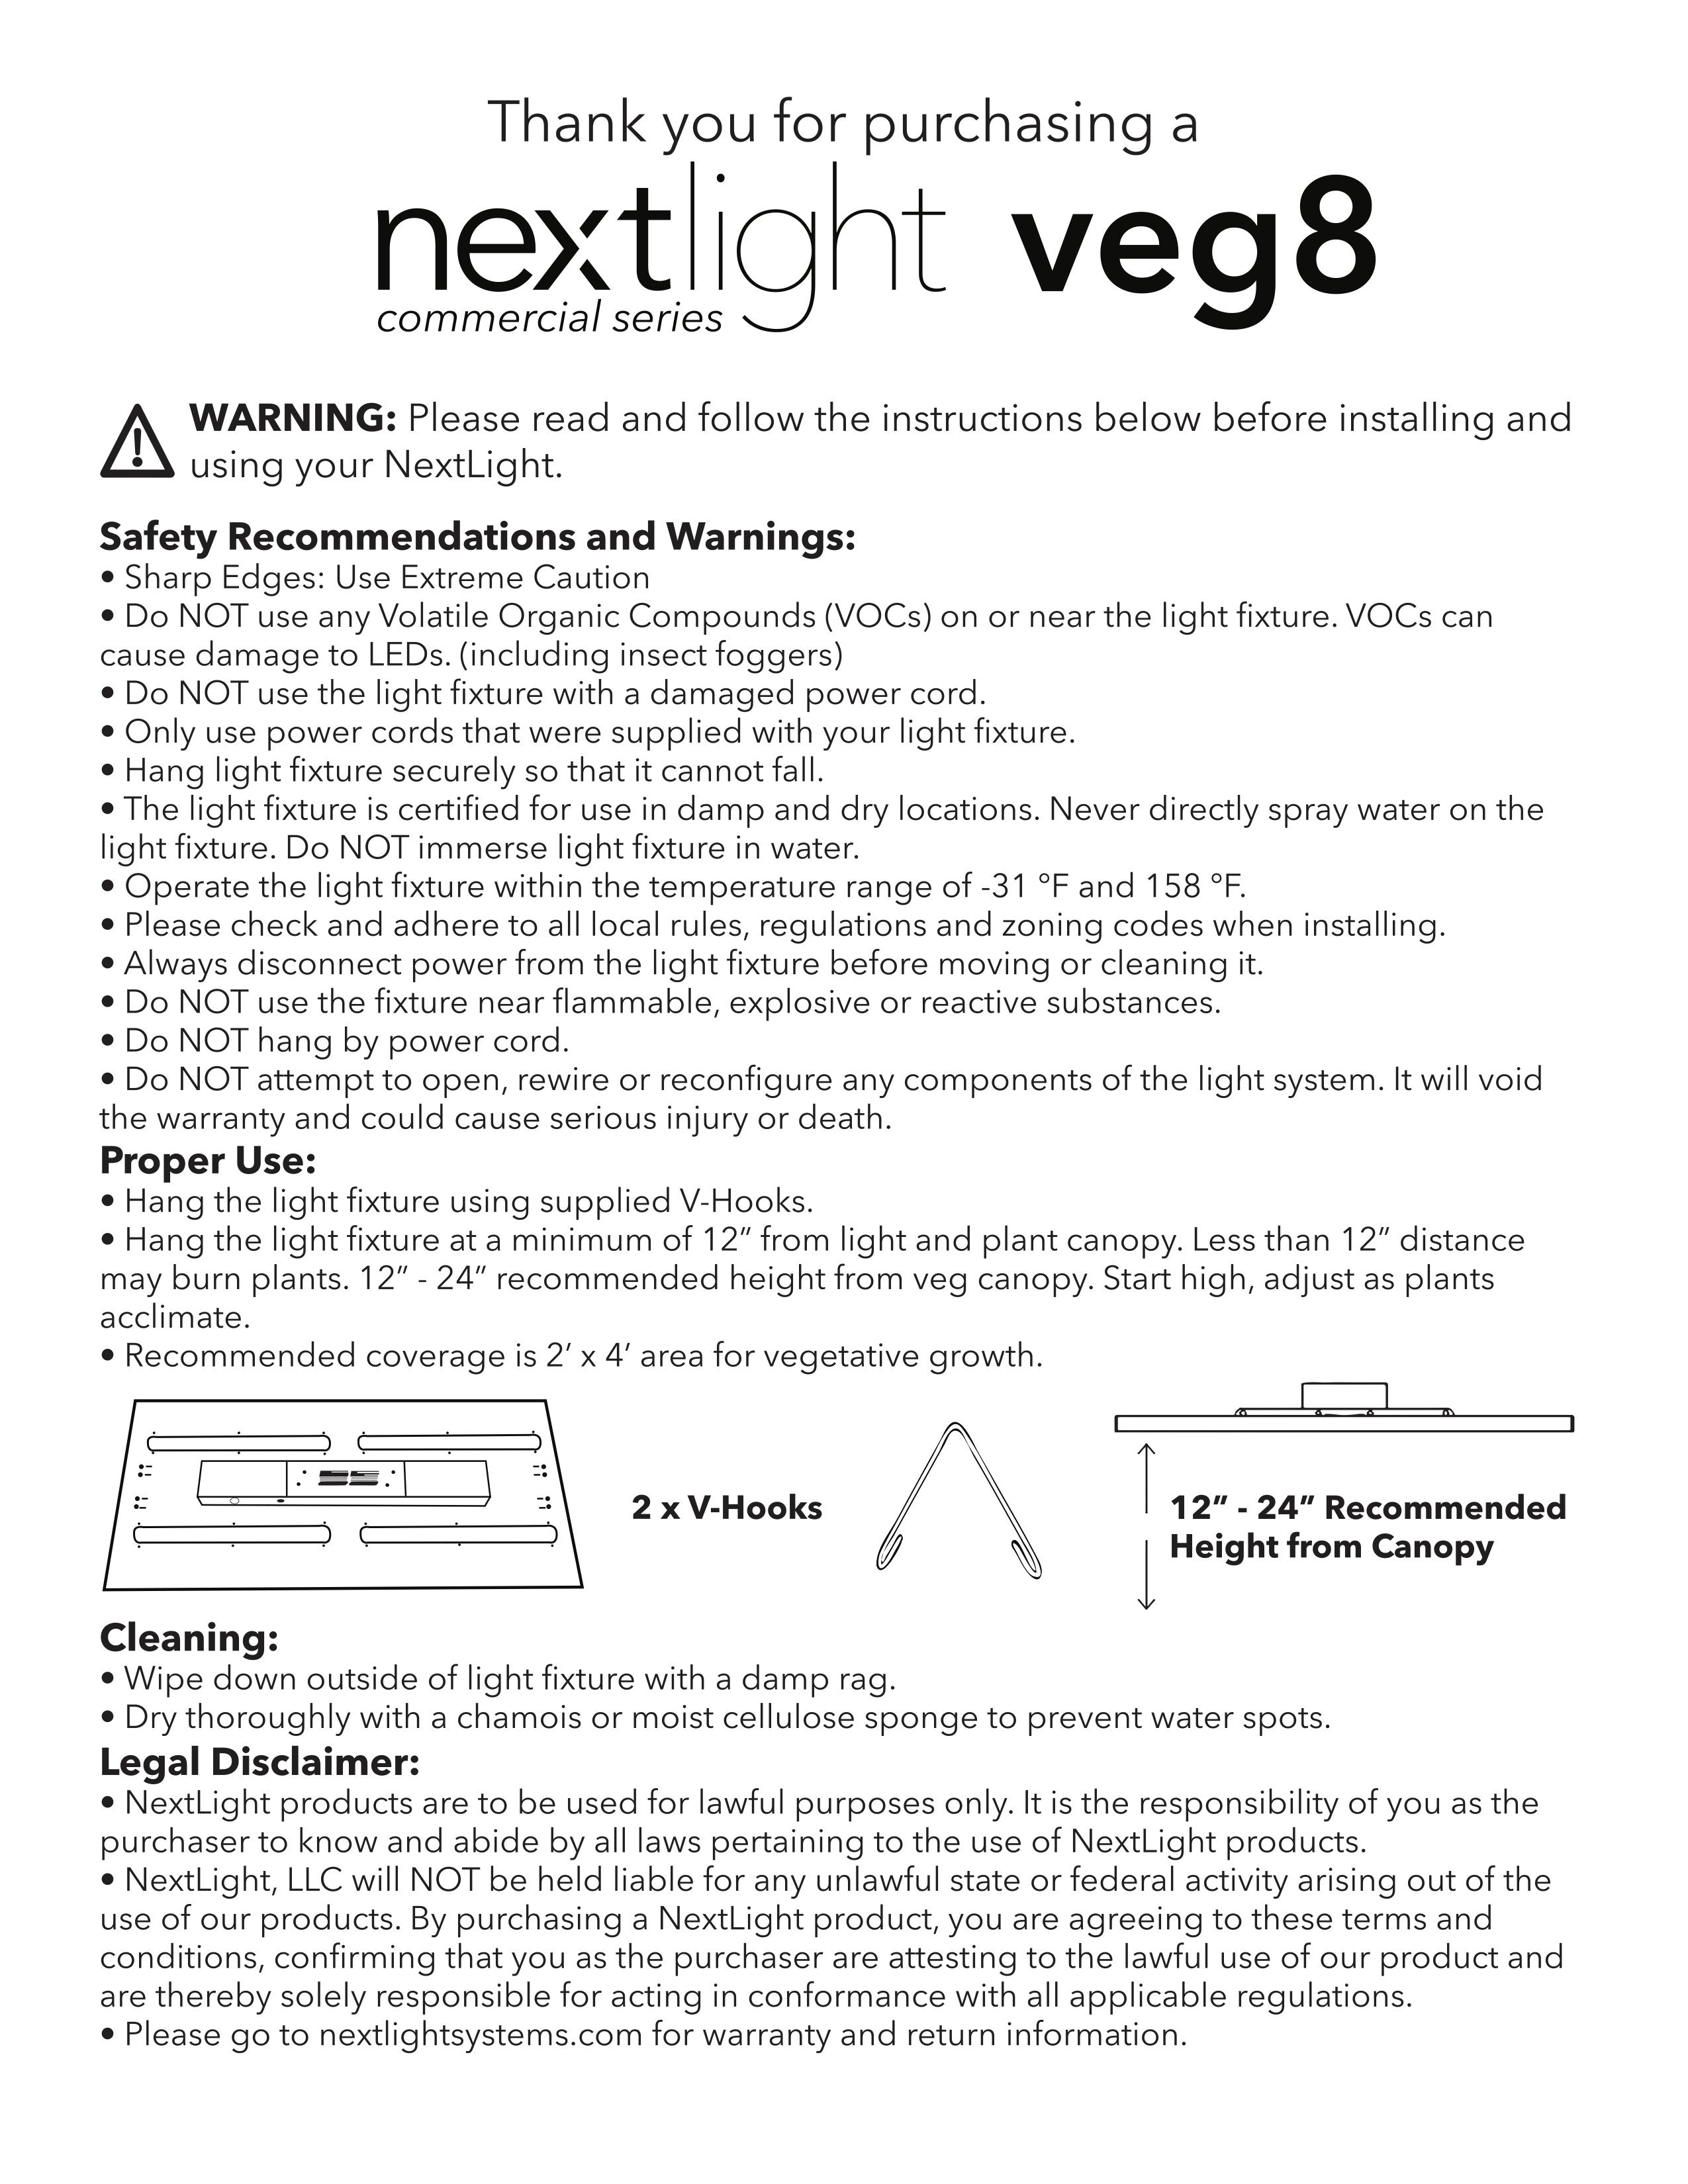 nextlight veg8 instructions kieflabs.com